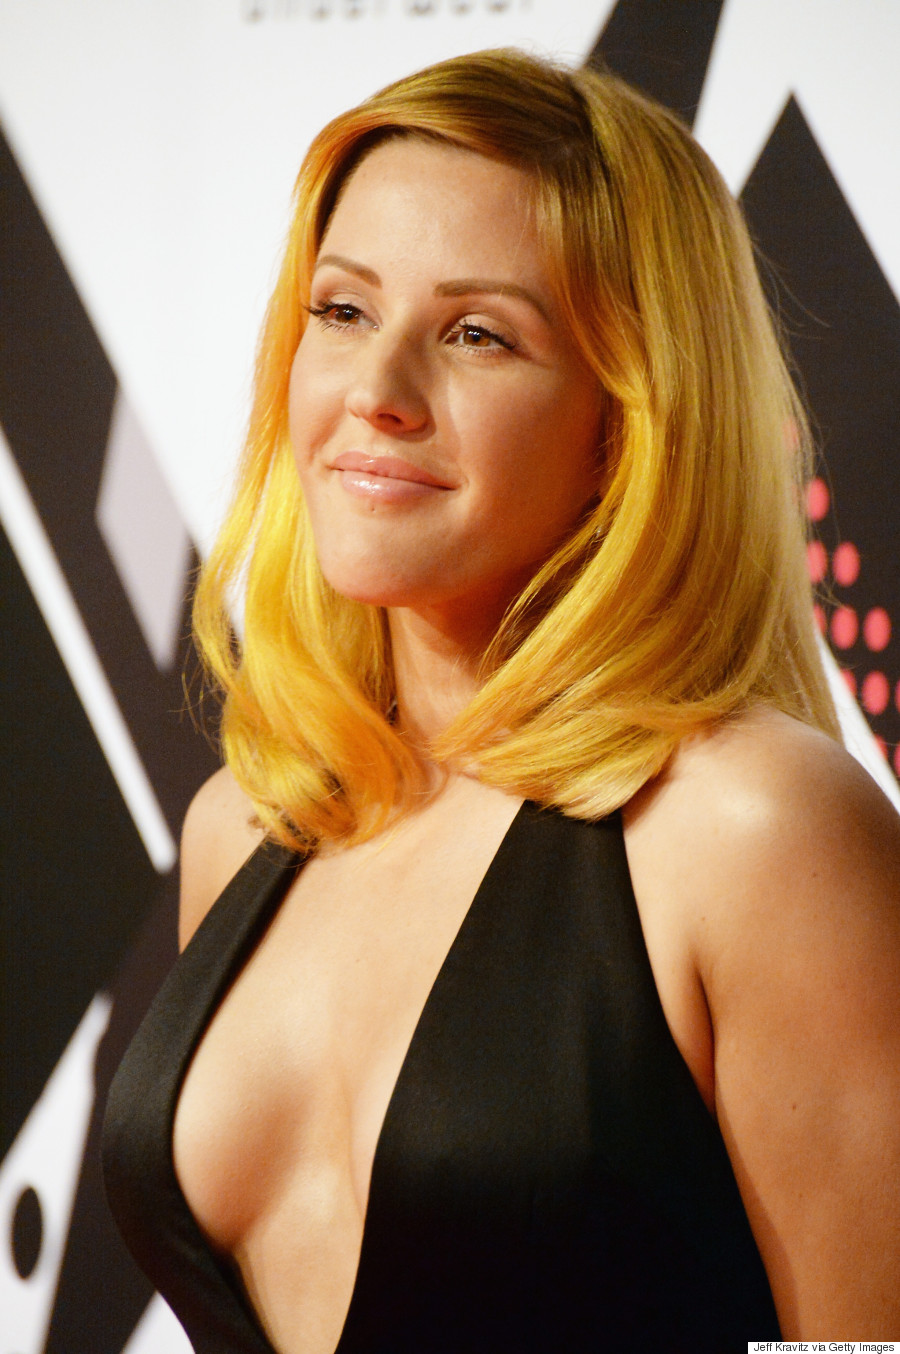 Ellie Goulding Shows Off New Vibrant Orange Hair On The